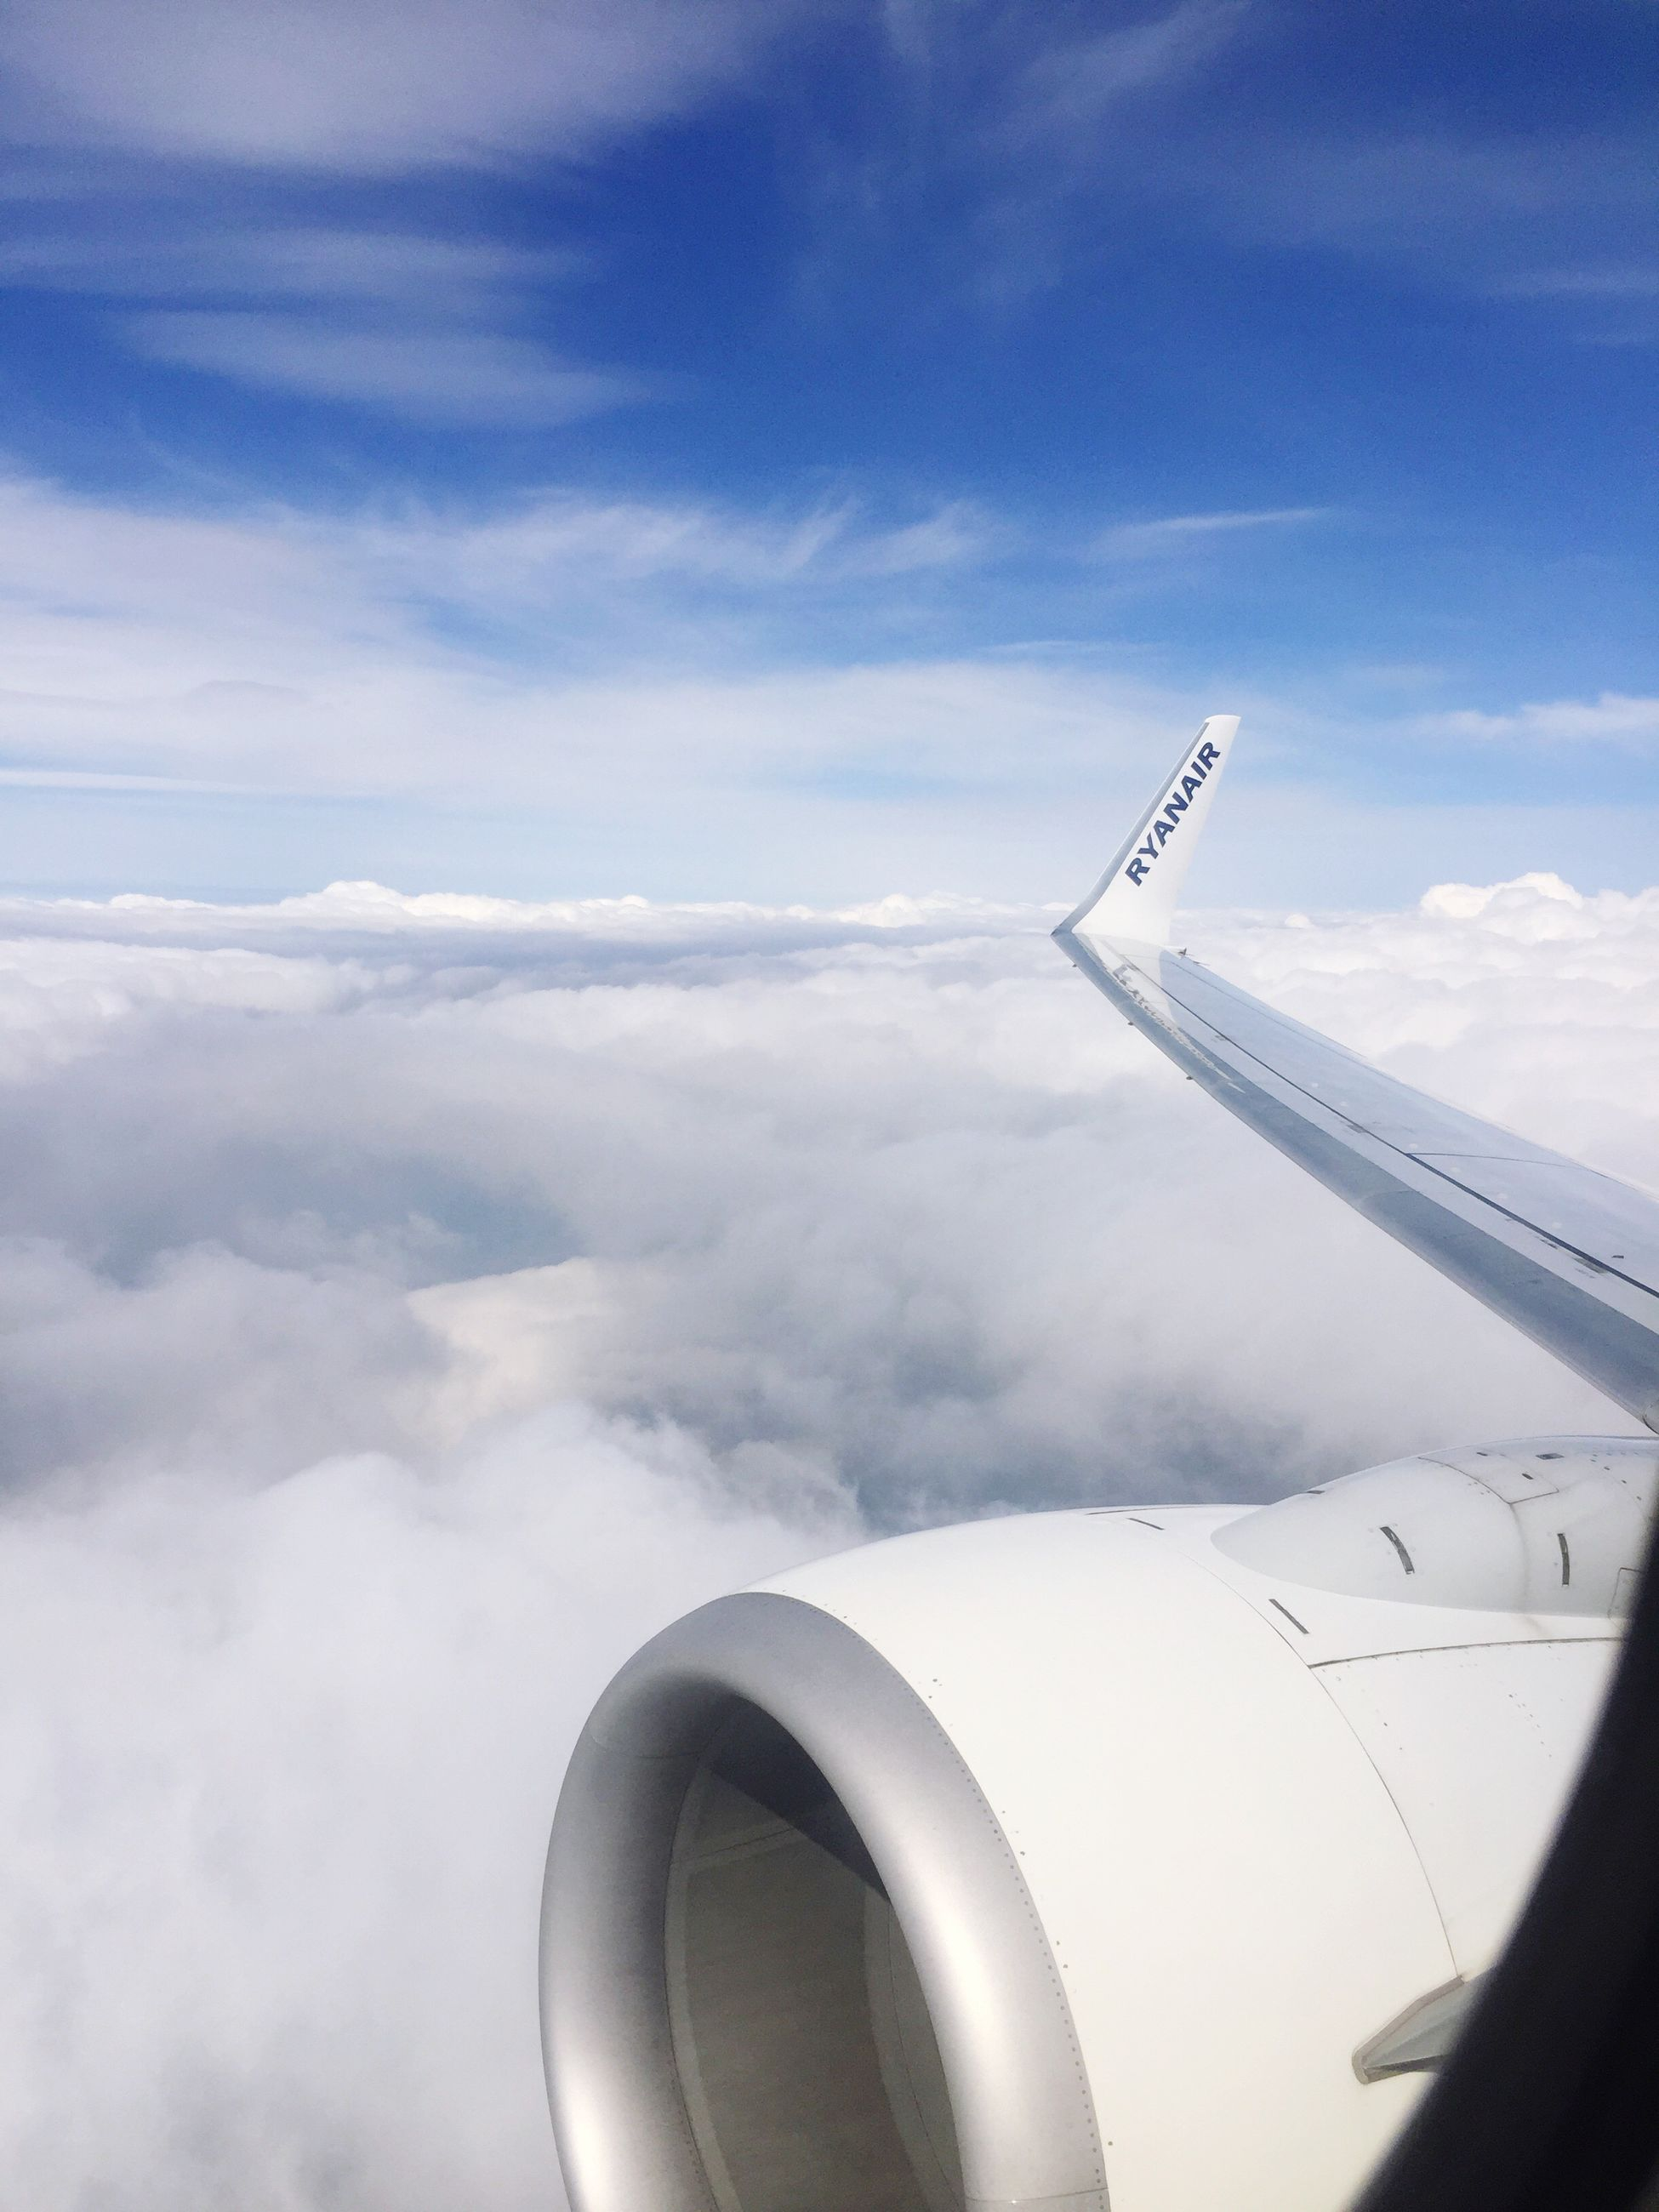 airplane, transportation, flying, aerial view, aircraft wing, travel, cloud - sky, air vehicle, sky, mode of transport, day, no people, public transportation, nature, outdoors, airplane wing